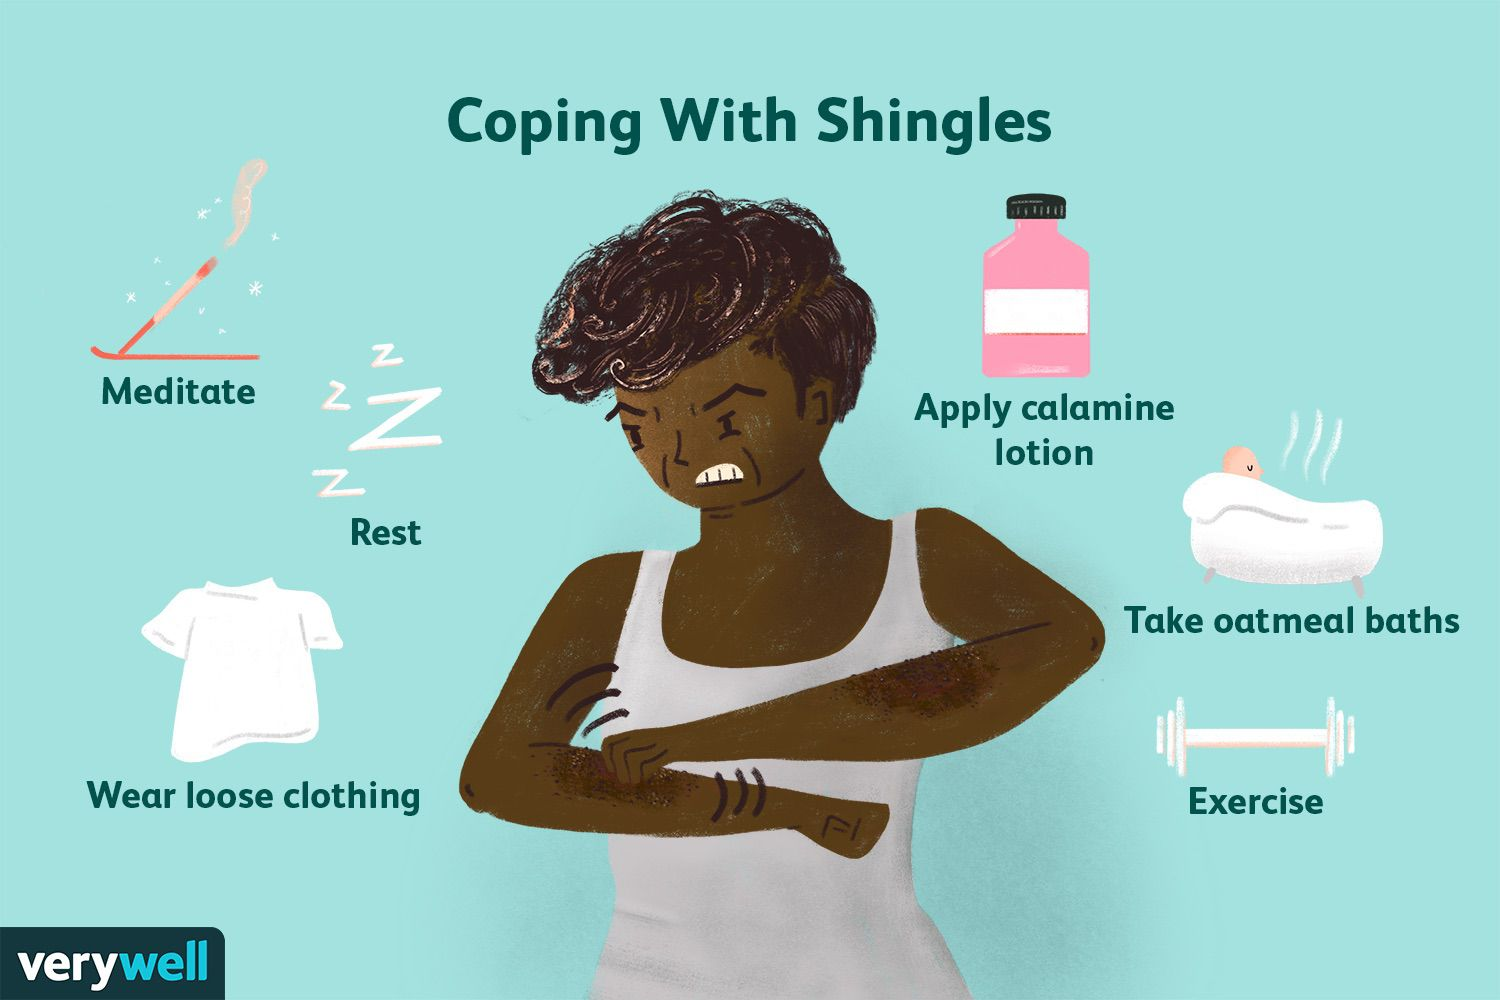 Coping with shingles.